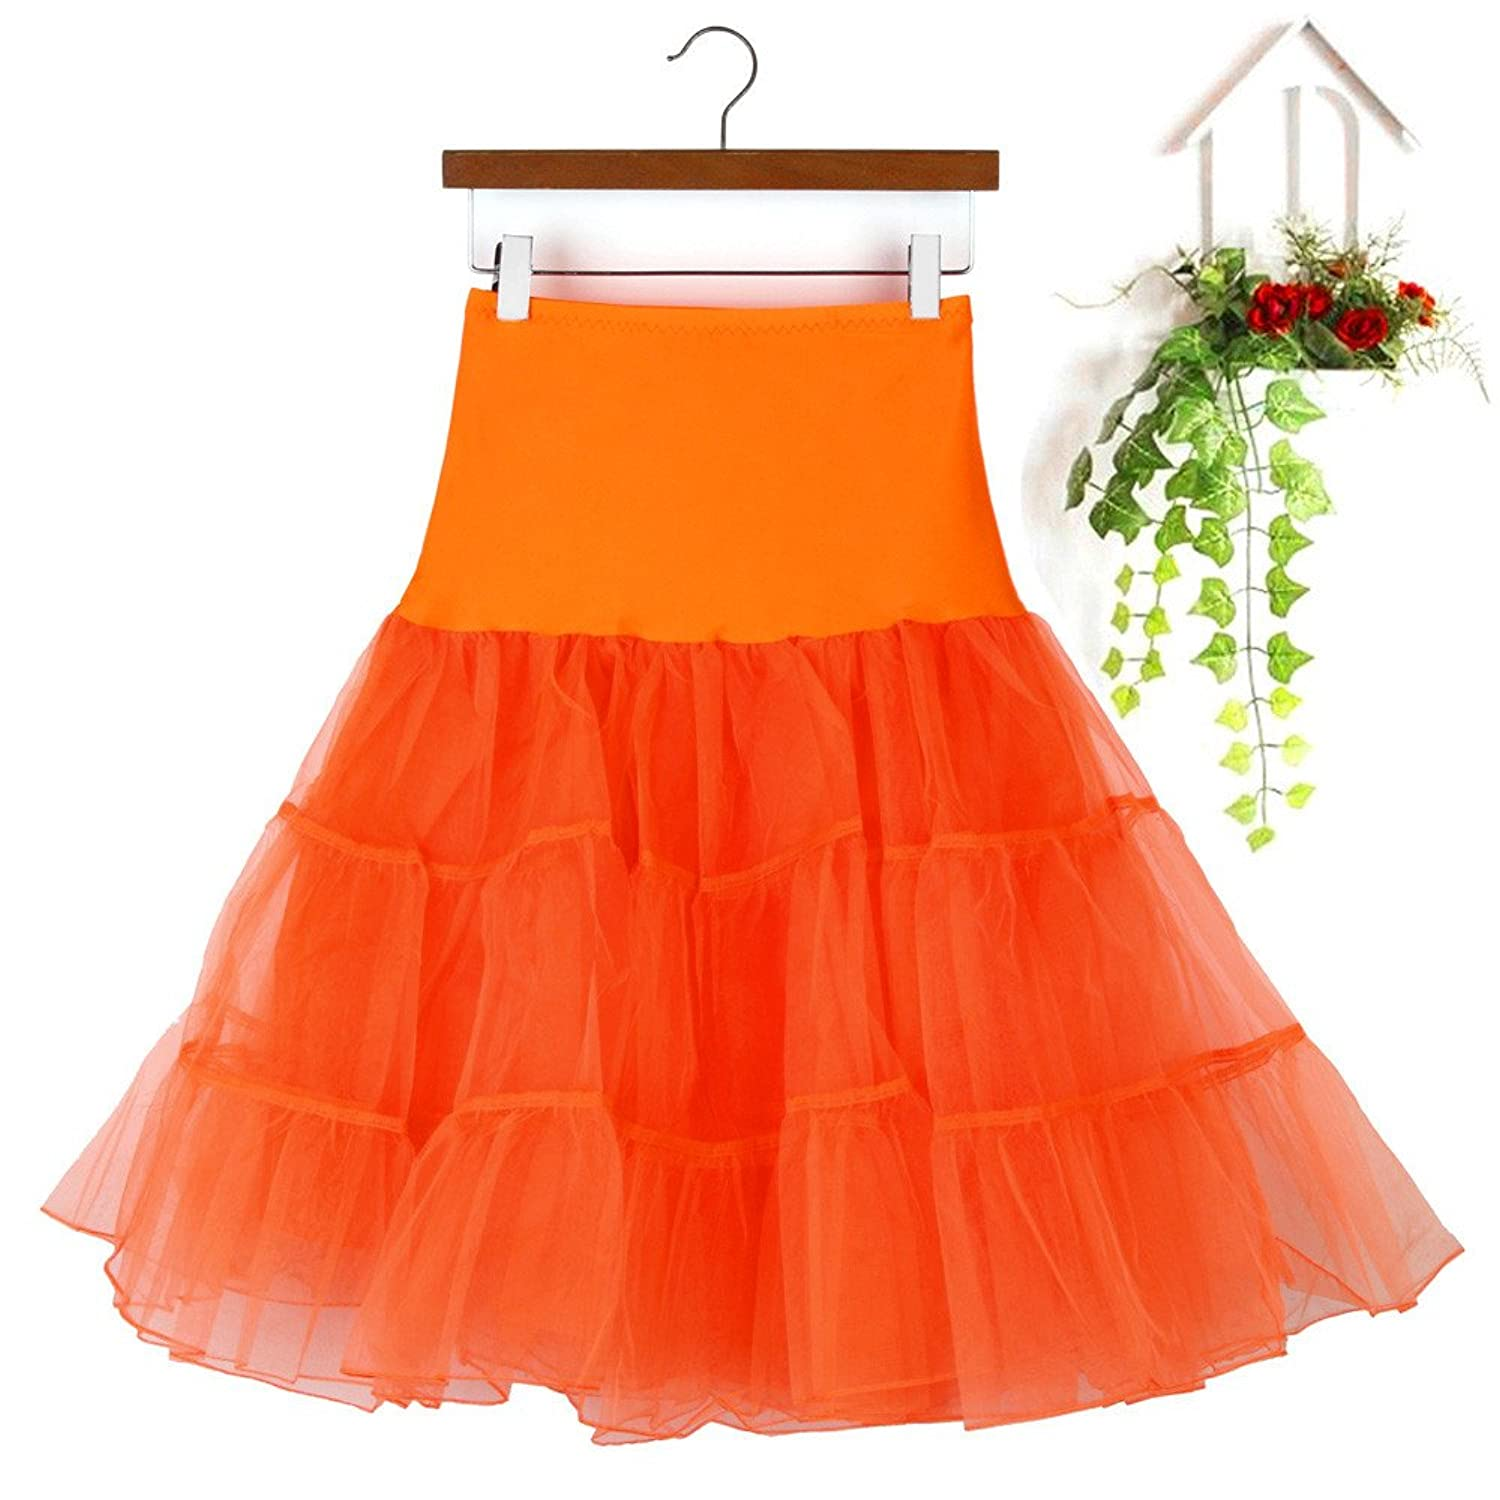 shitou Candy-Colored Womens High Waist Pleated Adult Tutu Dancing Skirt